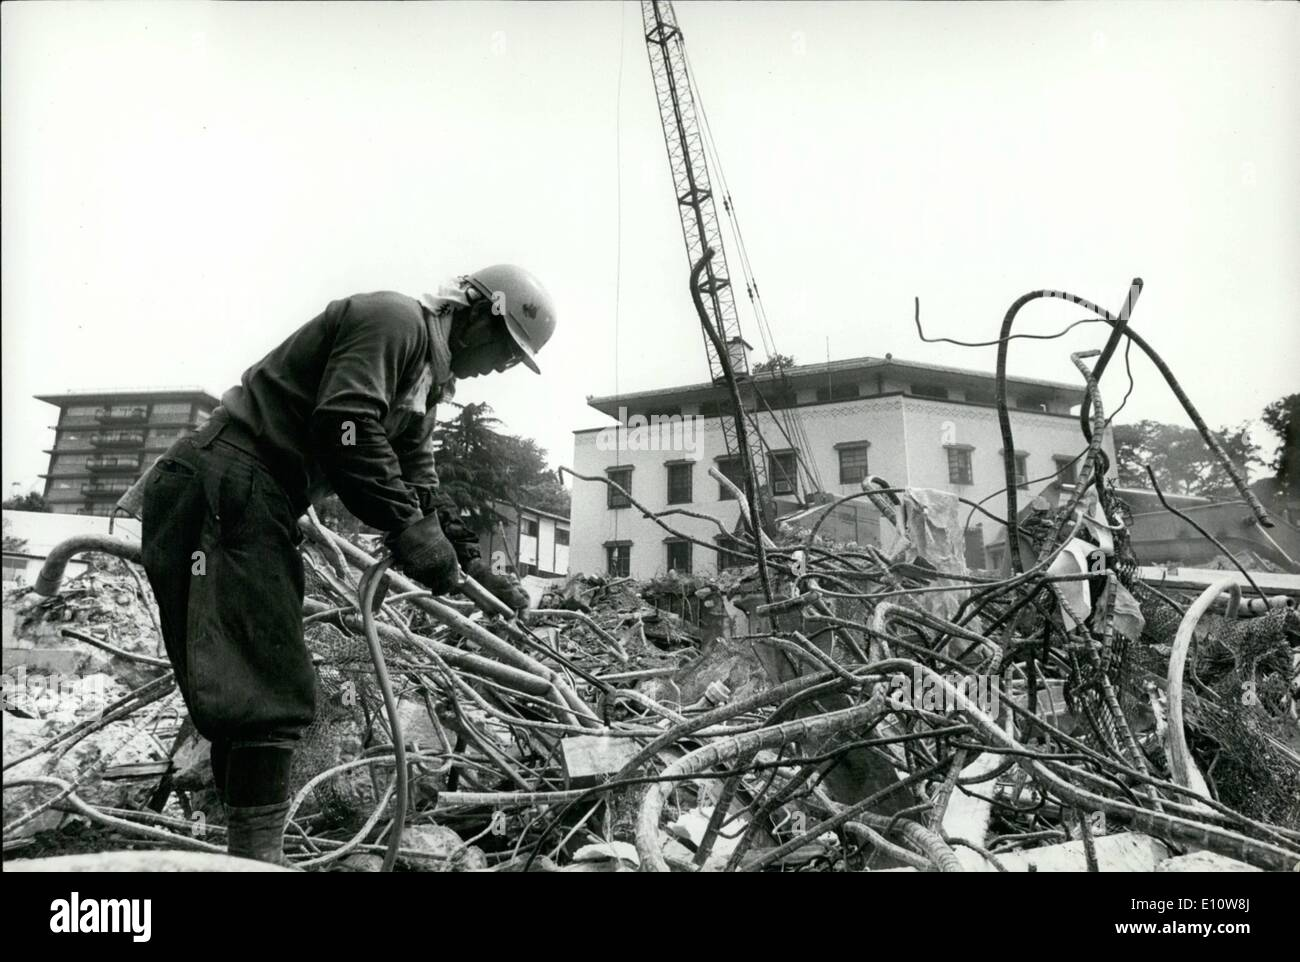 Jun. 06, 1974 - ''Hoover's Folly'' in Tokyo demolished. The u.s. Embassy in Tokyo, which was named ''Hoover's folly'' when critics charged that the exorbitant sum of -million was squanders on it by the late president Herbert hoover during the ''Great depression'' in 1931, is being demolished to make way for a glass paneled new American embassy. The old embassy was designed by Antonin Raymond. a disciple of Frank Lloyd wright, and was referred to as an edifice of mixed architectural blood. The new embassy has been designed by crease pelli of green associates in los angeles. U.S.A - Stock Image